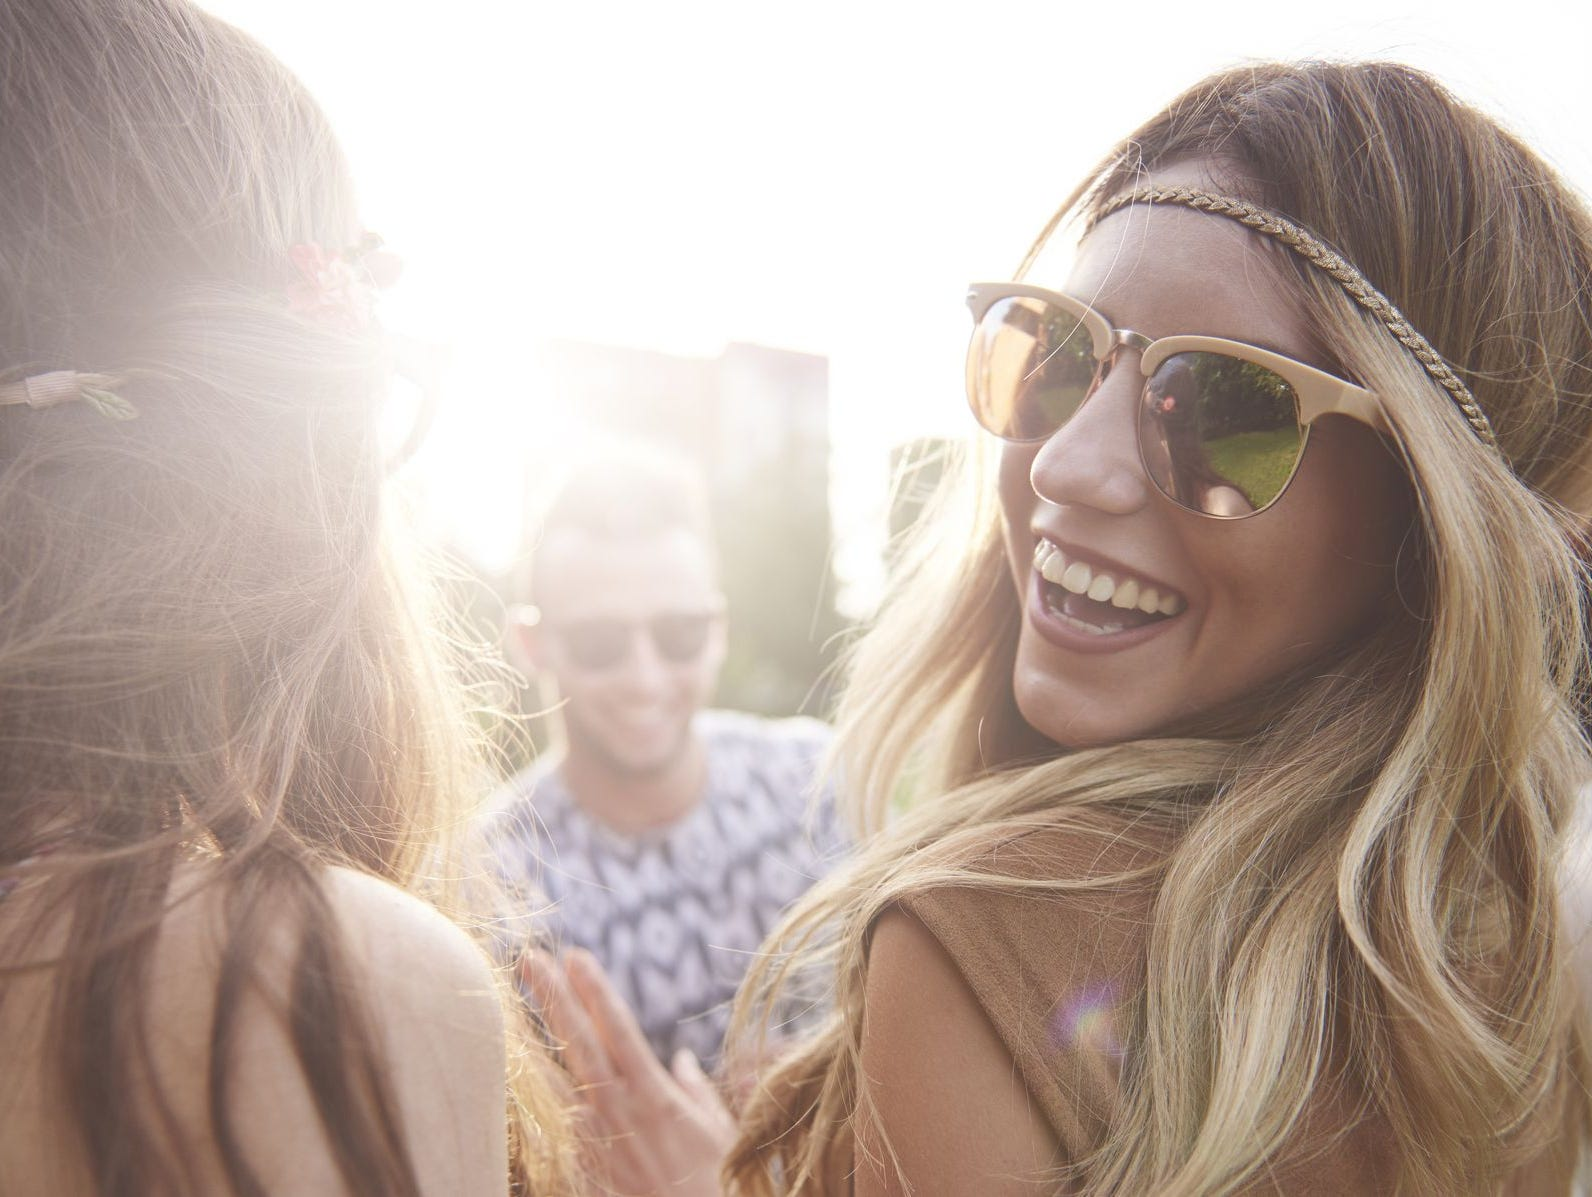 Music fans, make the most of your summer with a $300 Ticketmaster gift card. Enter 6/11-7/2.